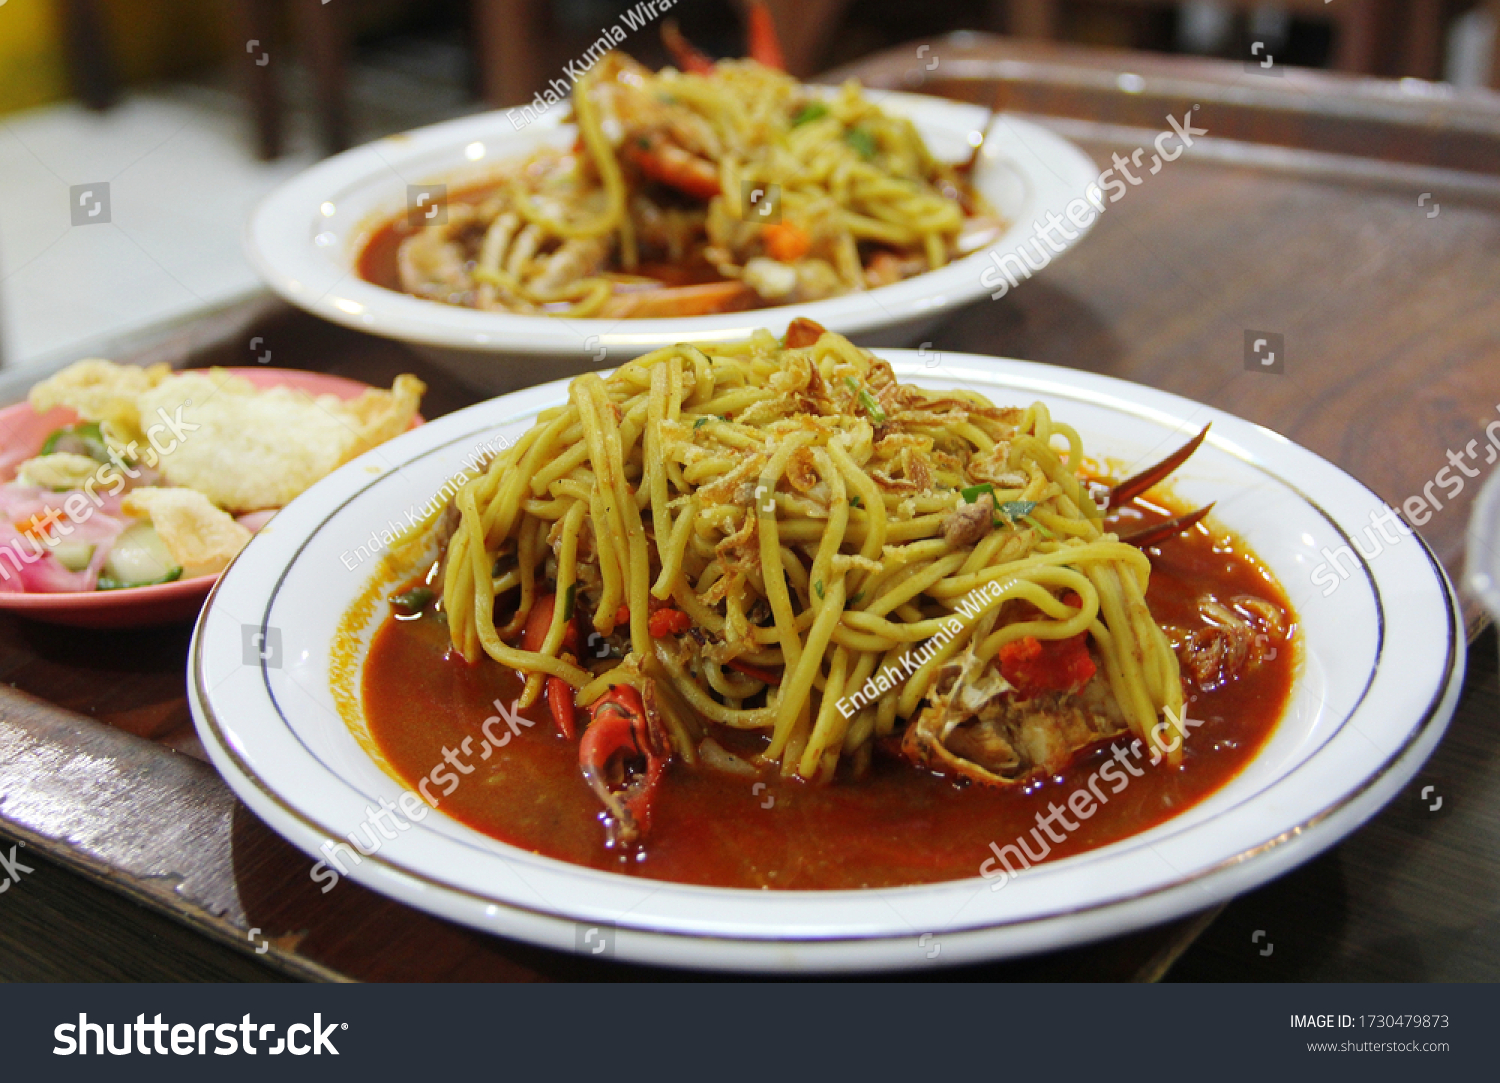 stock-photo-aceh-noodle-is-one-of-the-fa